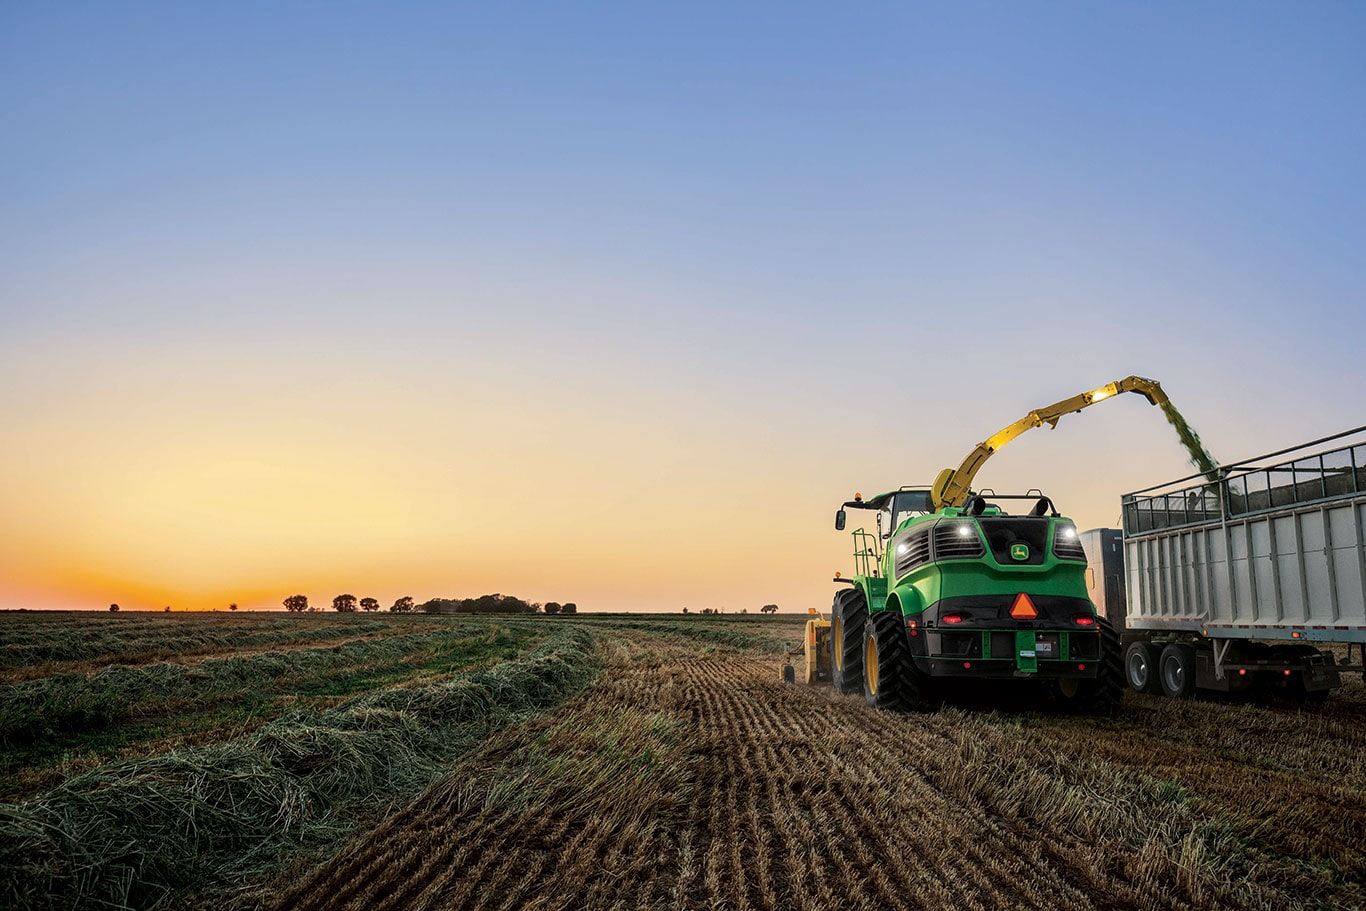 John Deere 9000 Series Self-Propelled Forage Harvesters provide up to 400 tonnes of throughput per hour